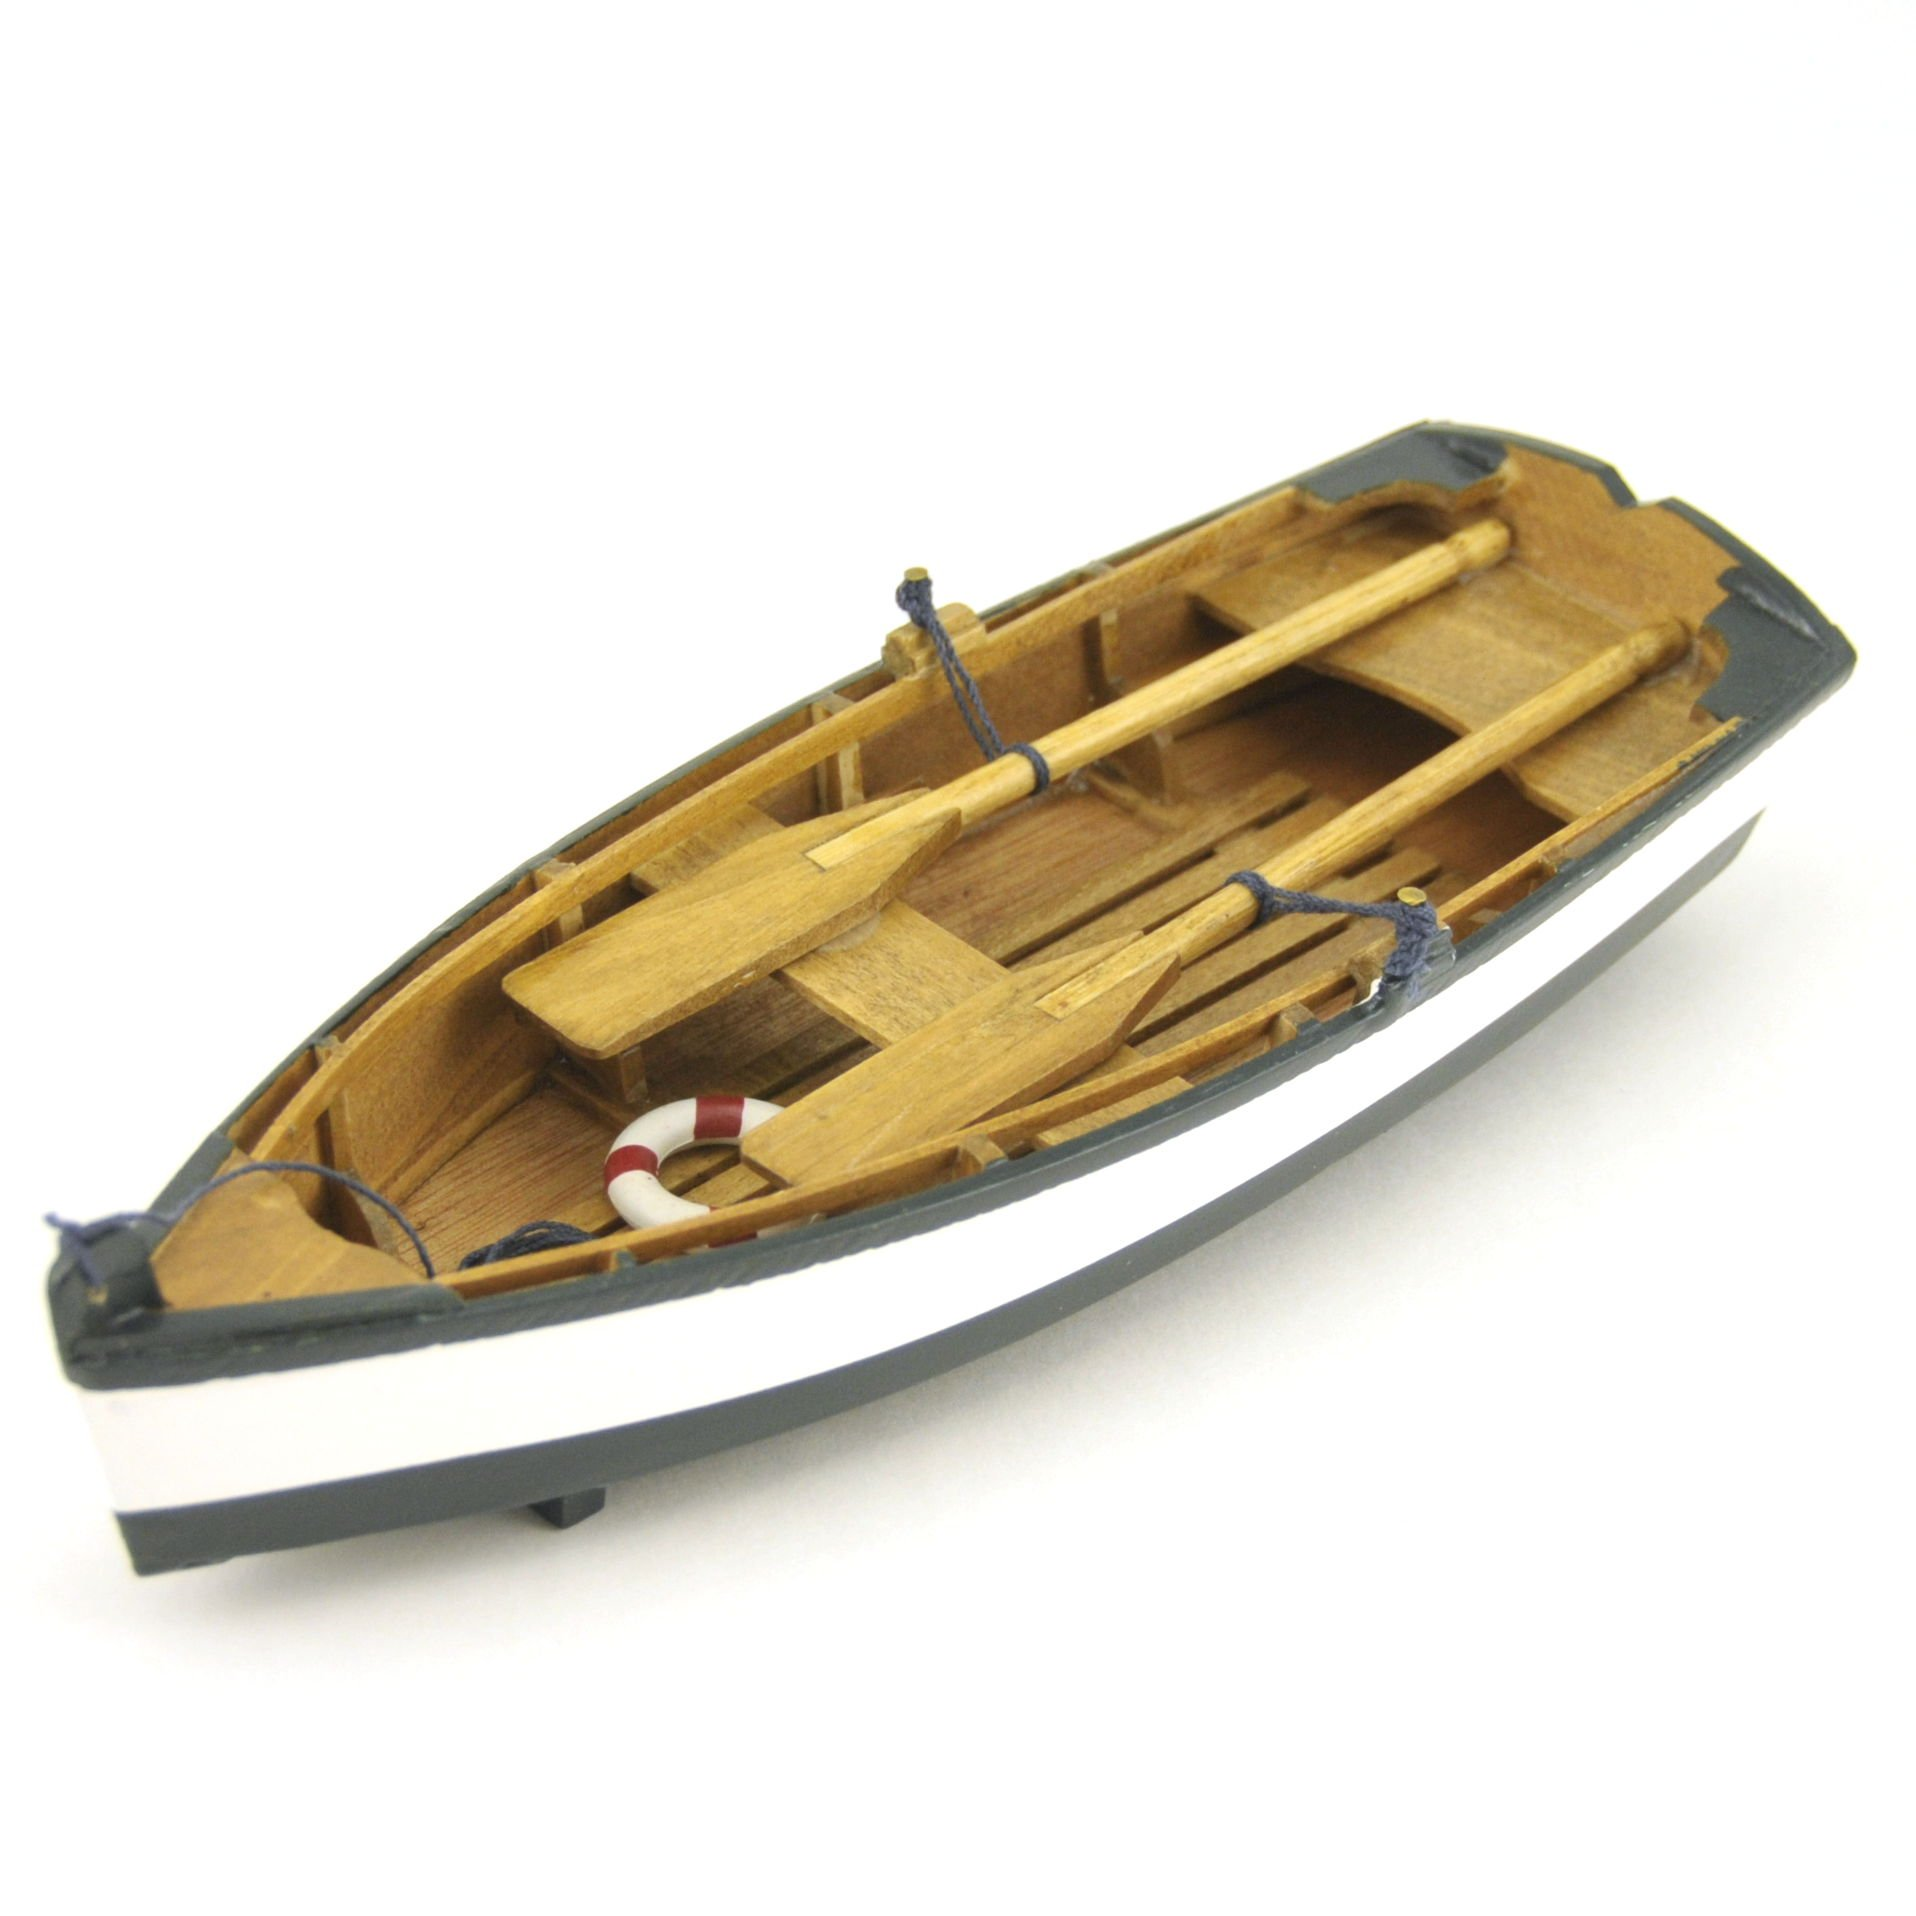 Wood Crafted Row Boat Model Replica Collectible, 8.5-inch, Nautical Decor, Green by Nautical Collection